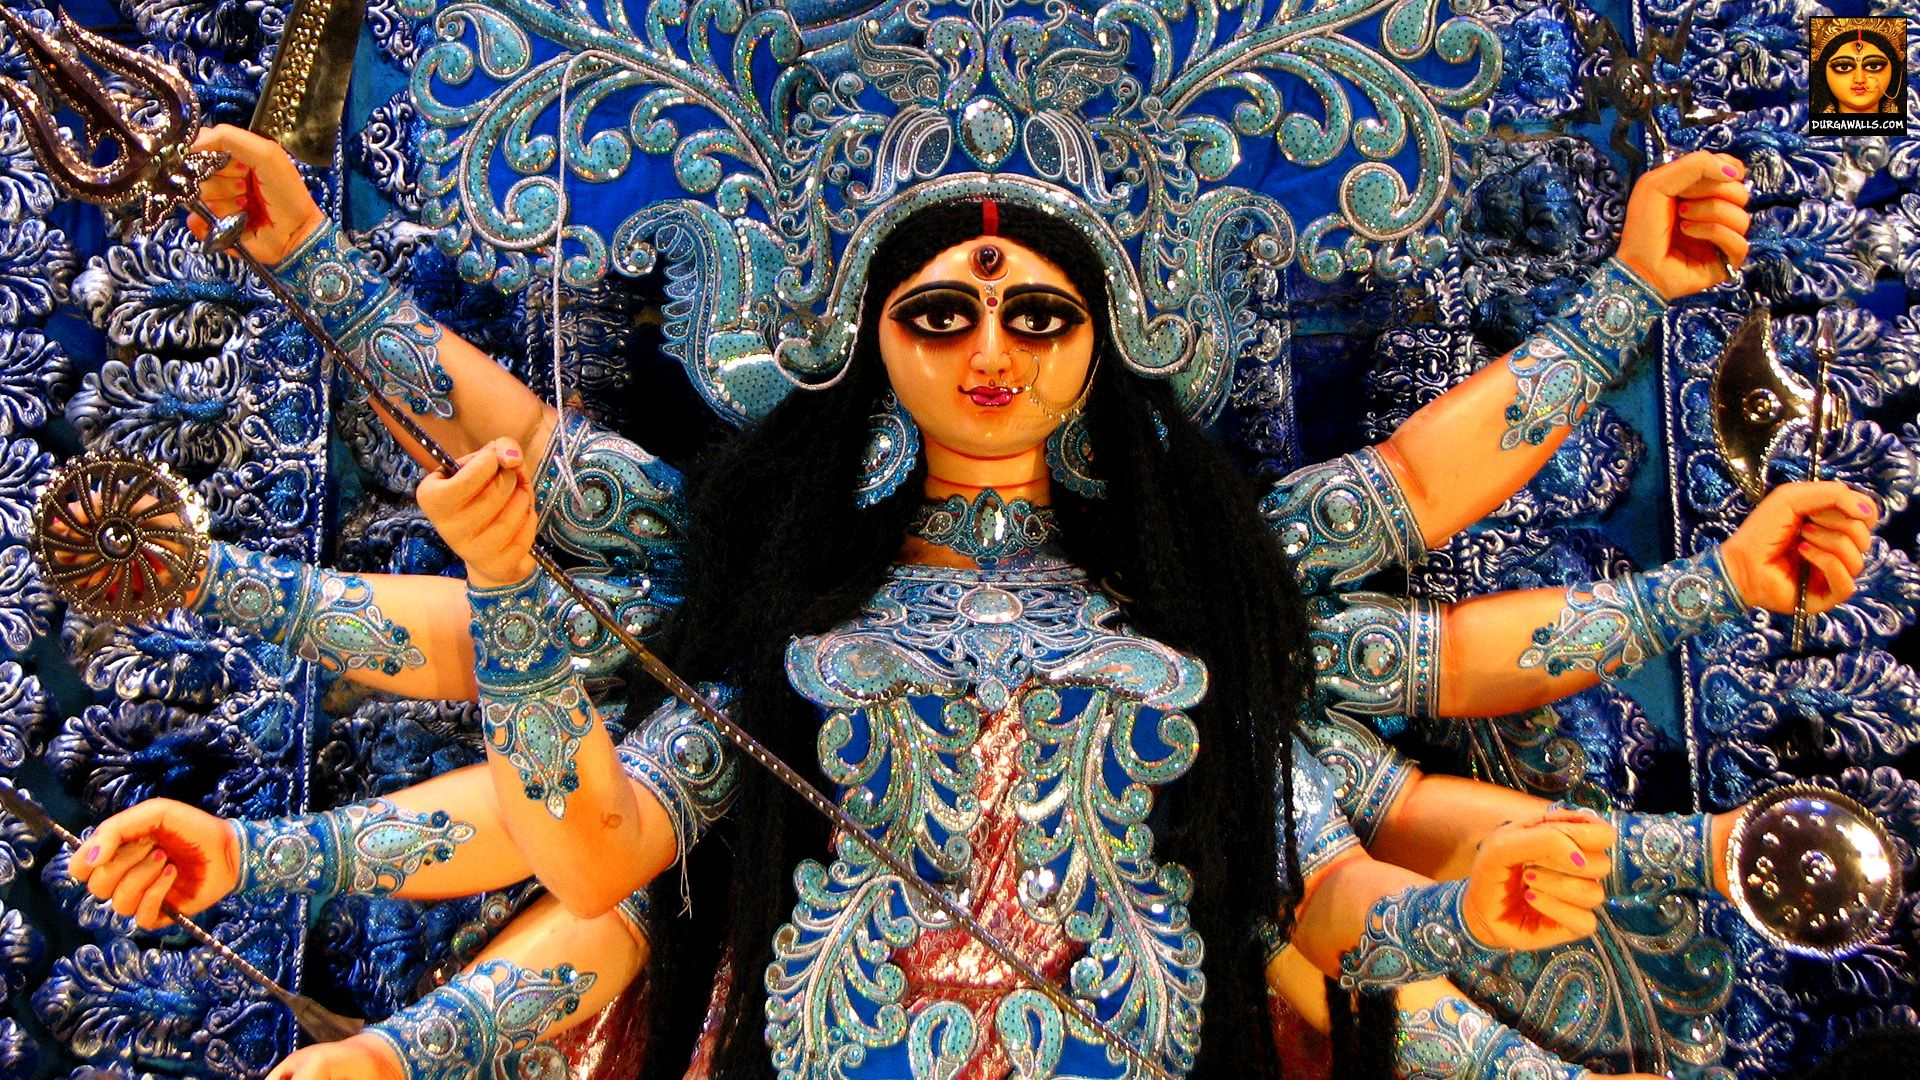 Hd Wallpaper Durga Puja Durga Durga Goddess